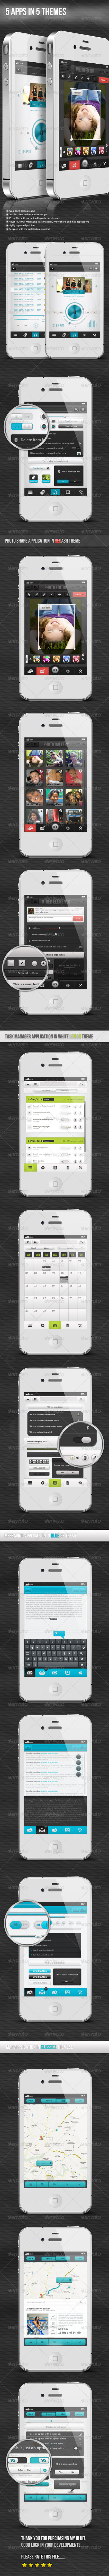 GraphicRiver 5 IOS Apps in 5 Fascinating Themes UI Kit 3832143